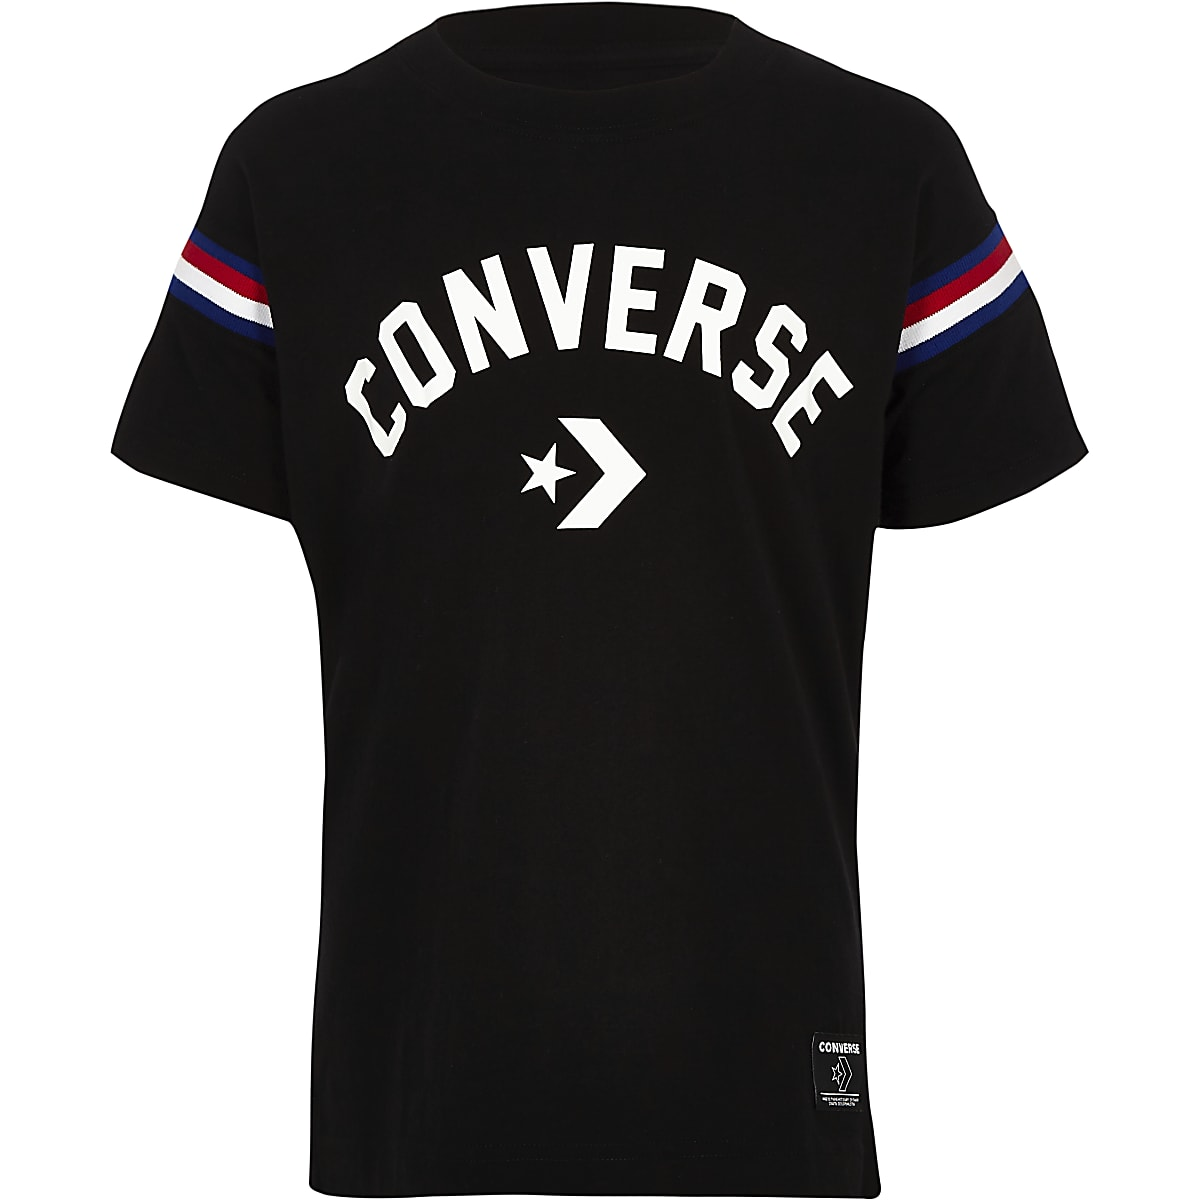 Boys black Converse logo split hem T-shirt